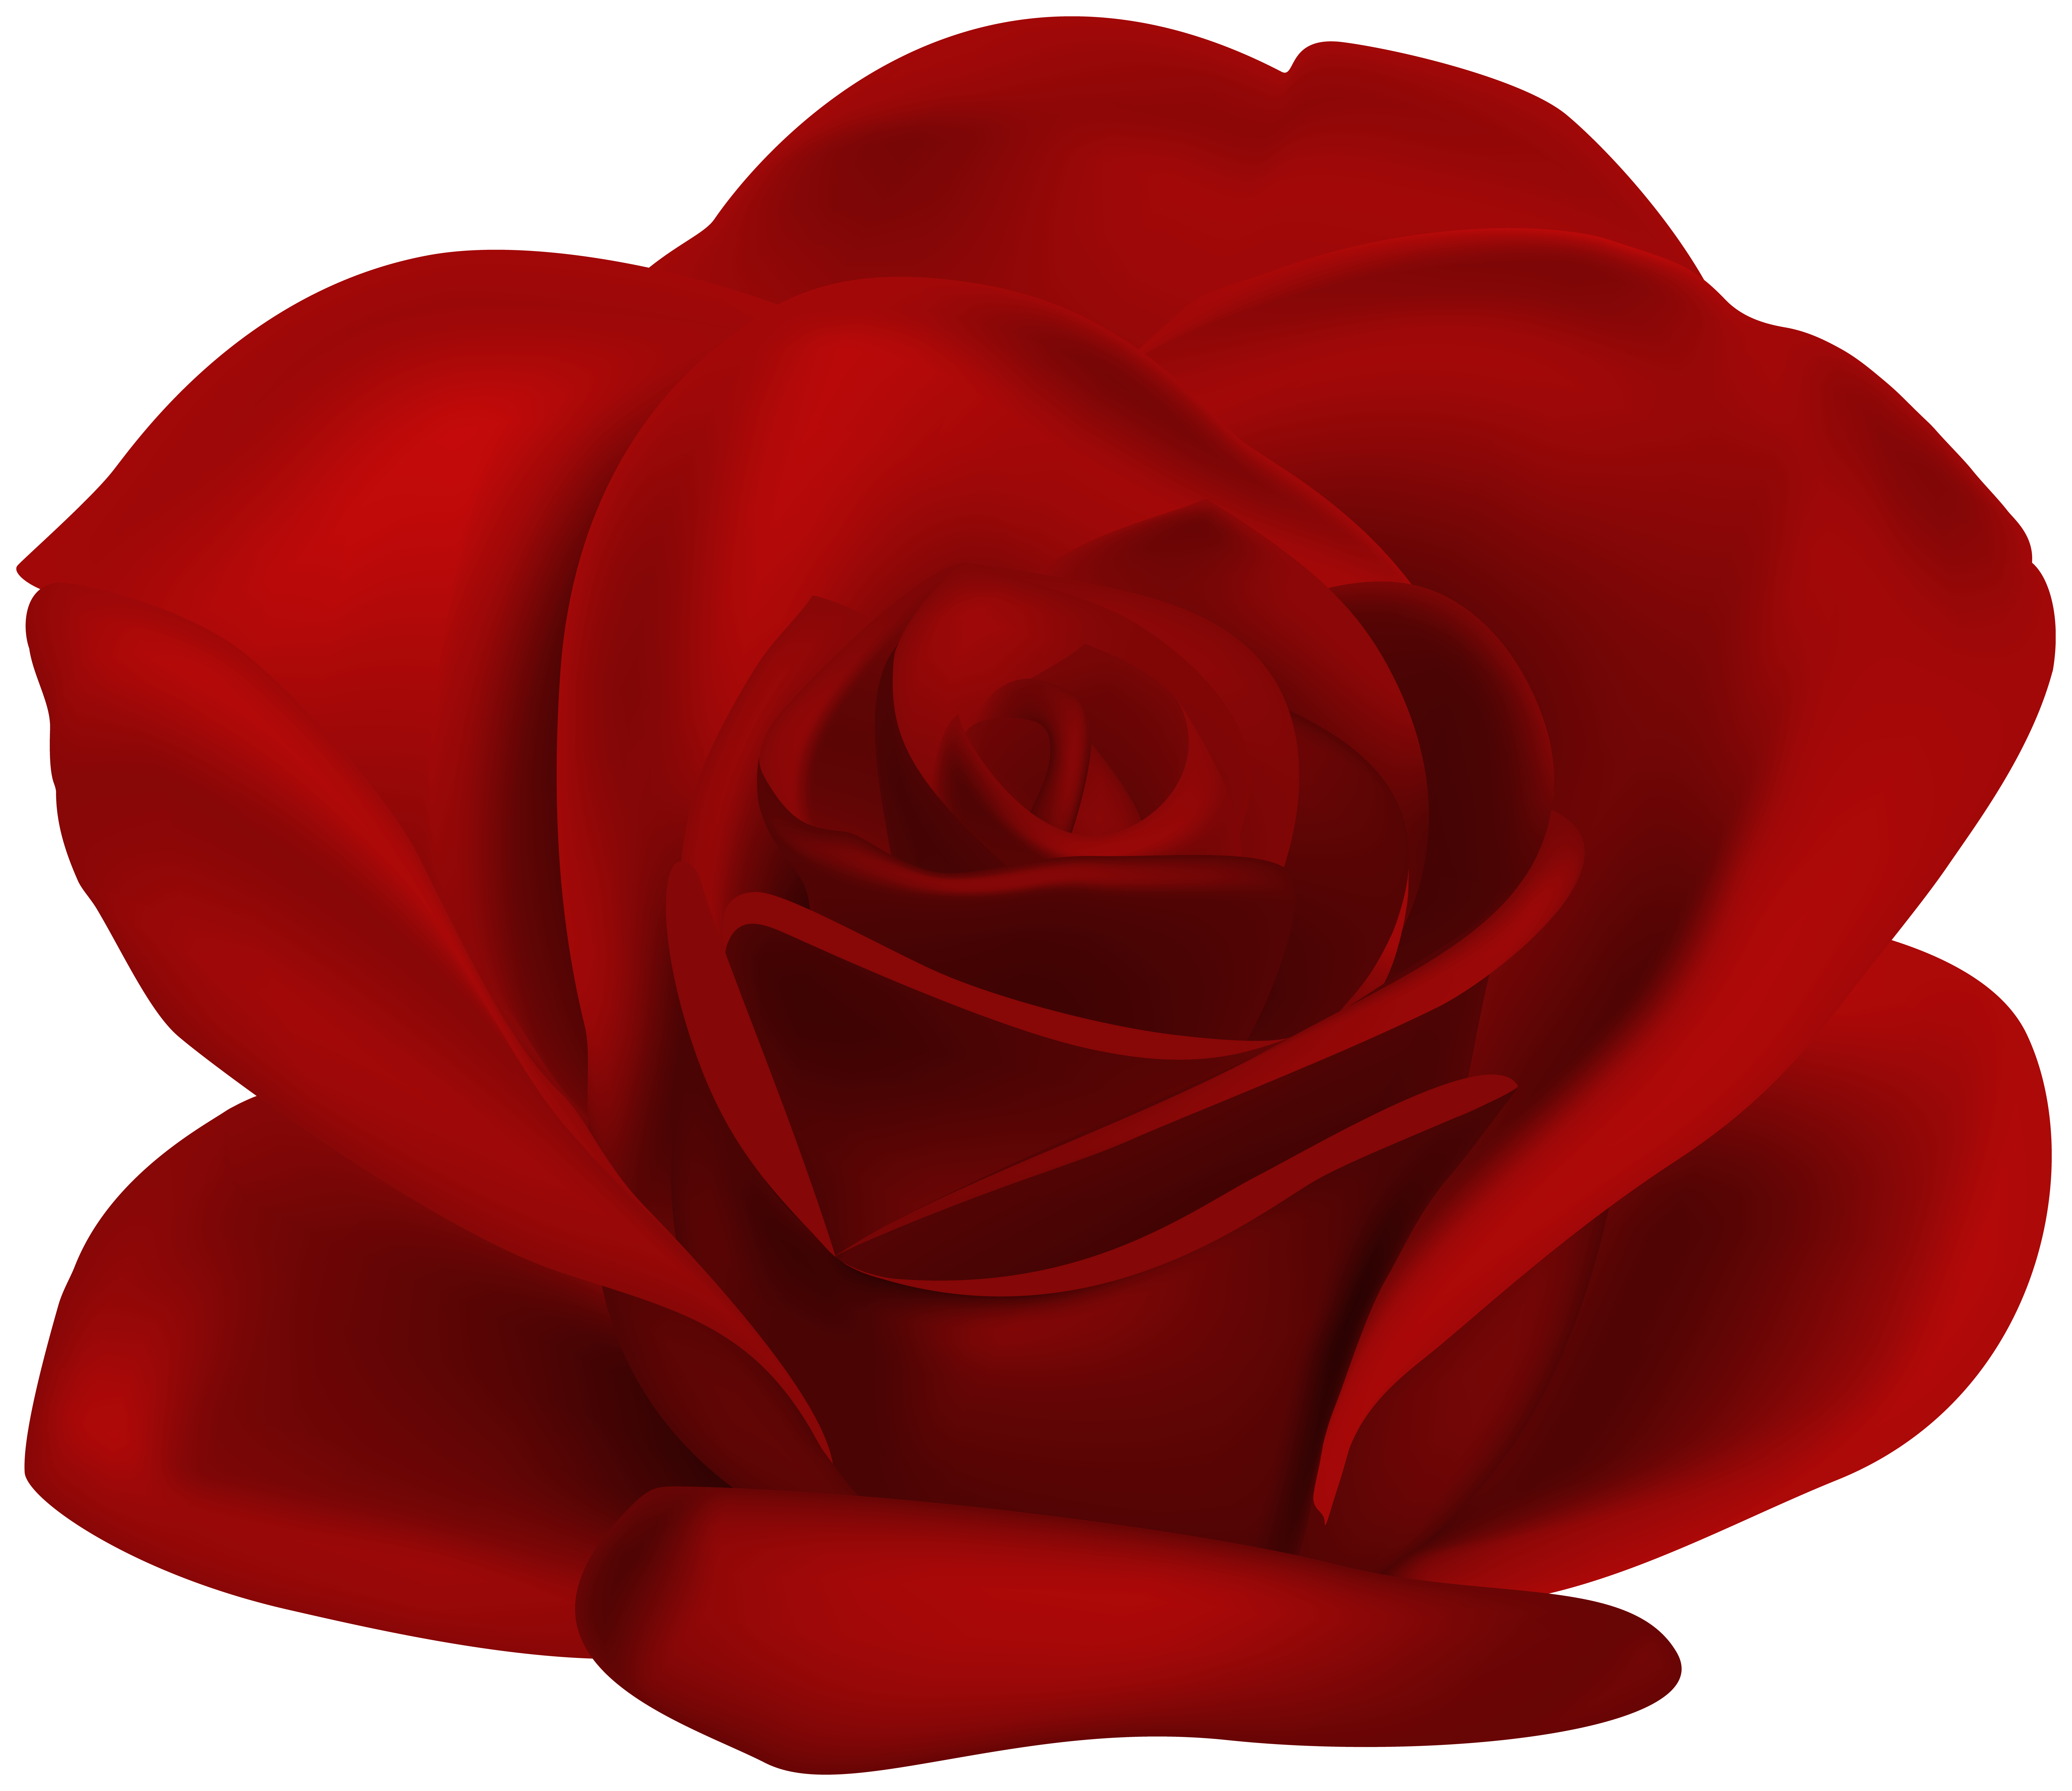 Flower rose clipart png royalty free library Red Flower Rose Transparent Image | Gallery Yopriceville - High ... png royalty free library